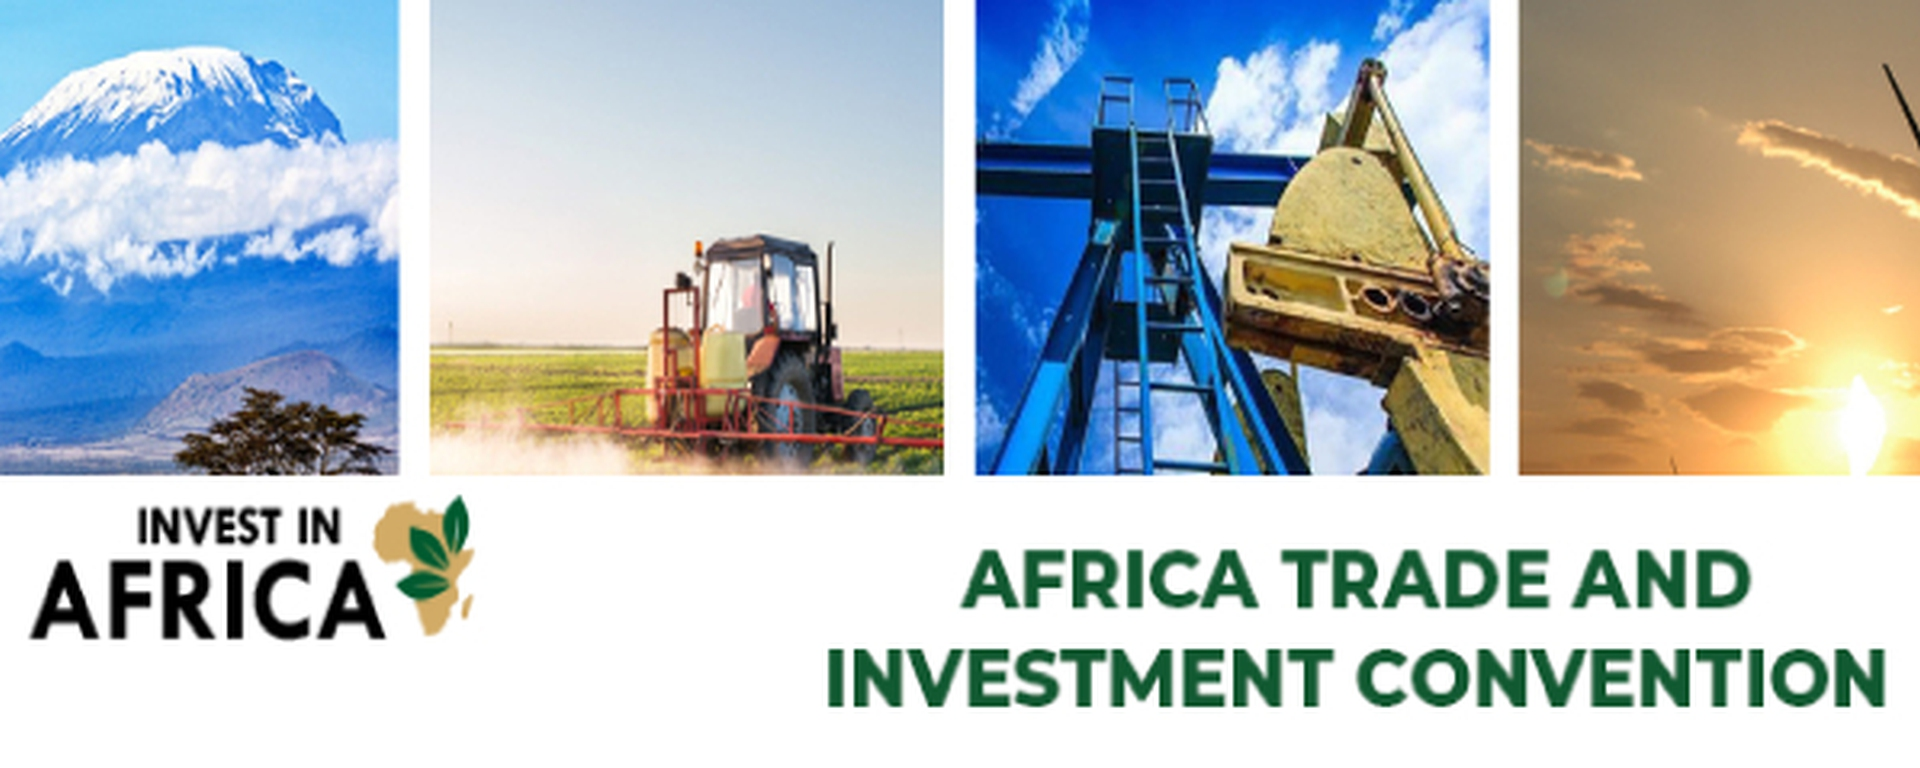 Changemaker International - Africa Trade and Investment Convention 2021 Movemeback African event cover image